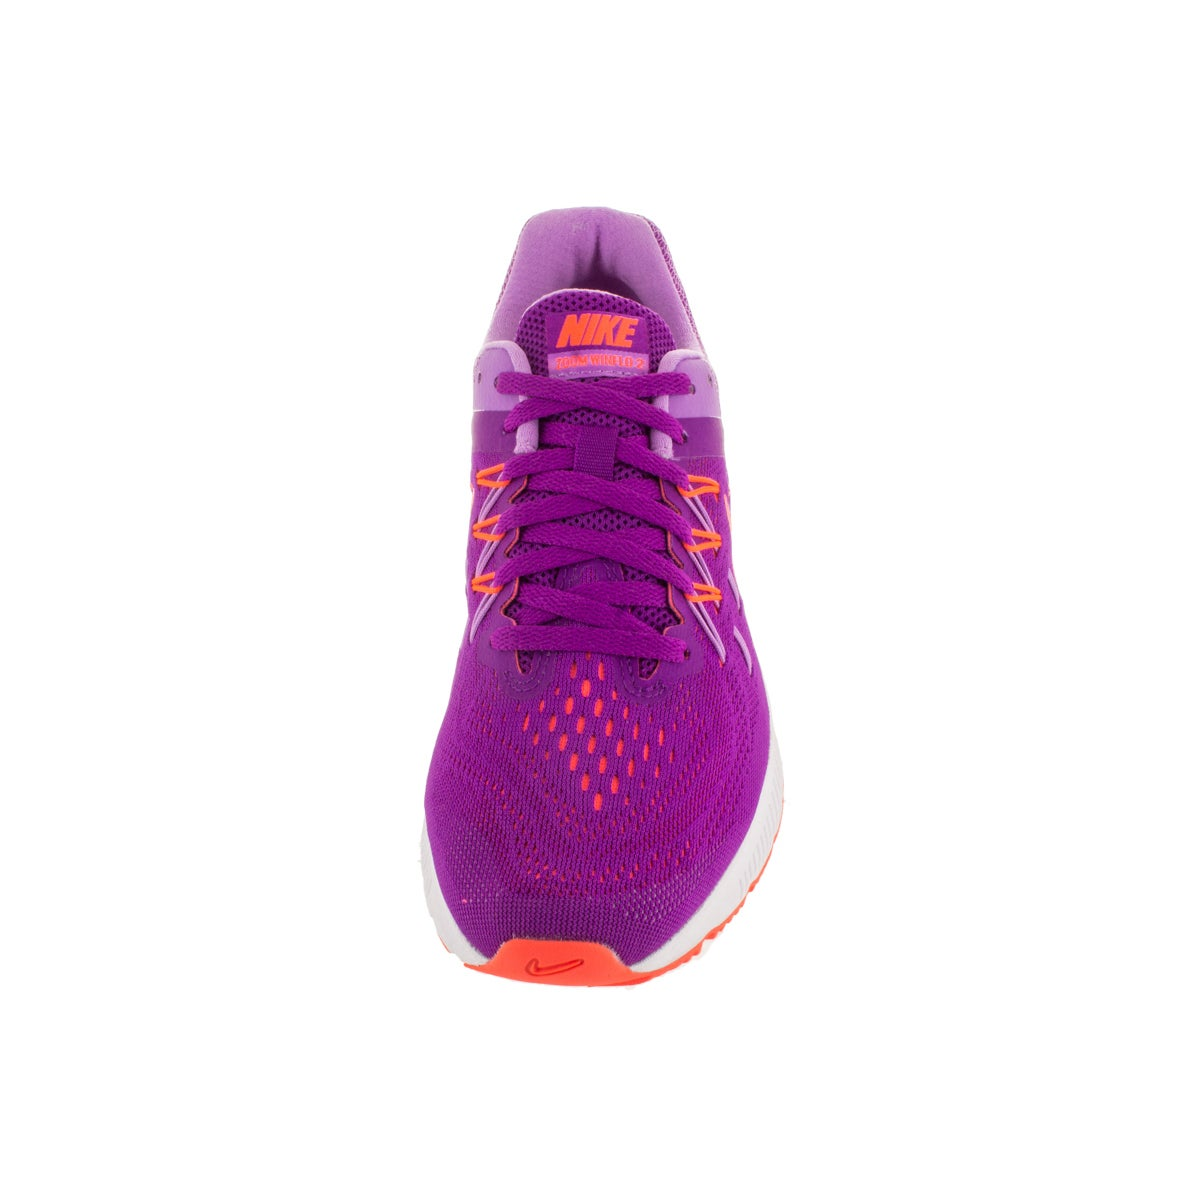 the latest fa221 30355 Shop Nike Women s Zoom Winflo 2 Vvd Purple  Orange Wh Running Shoe - Free  Shipping Today - Overstock - 12328898